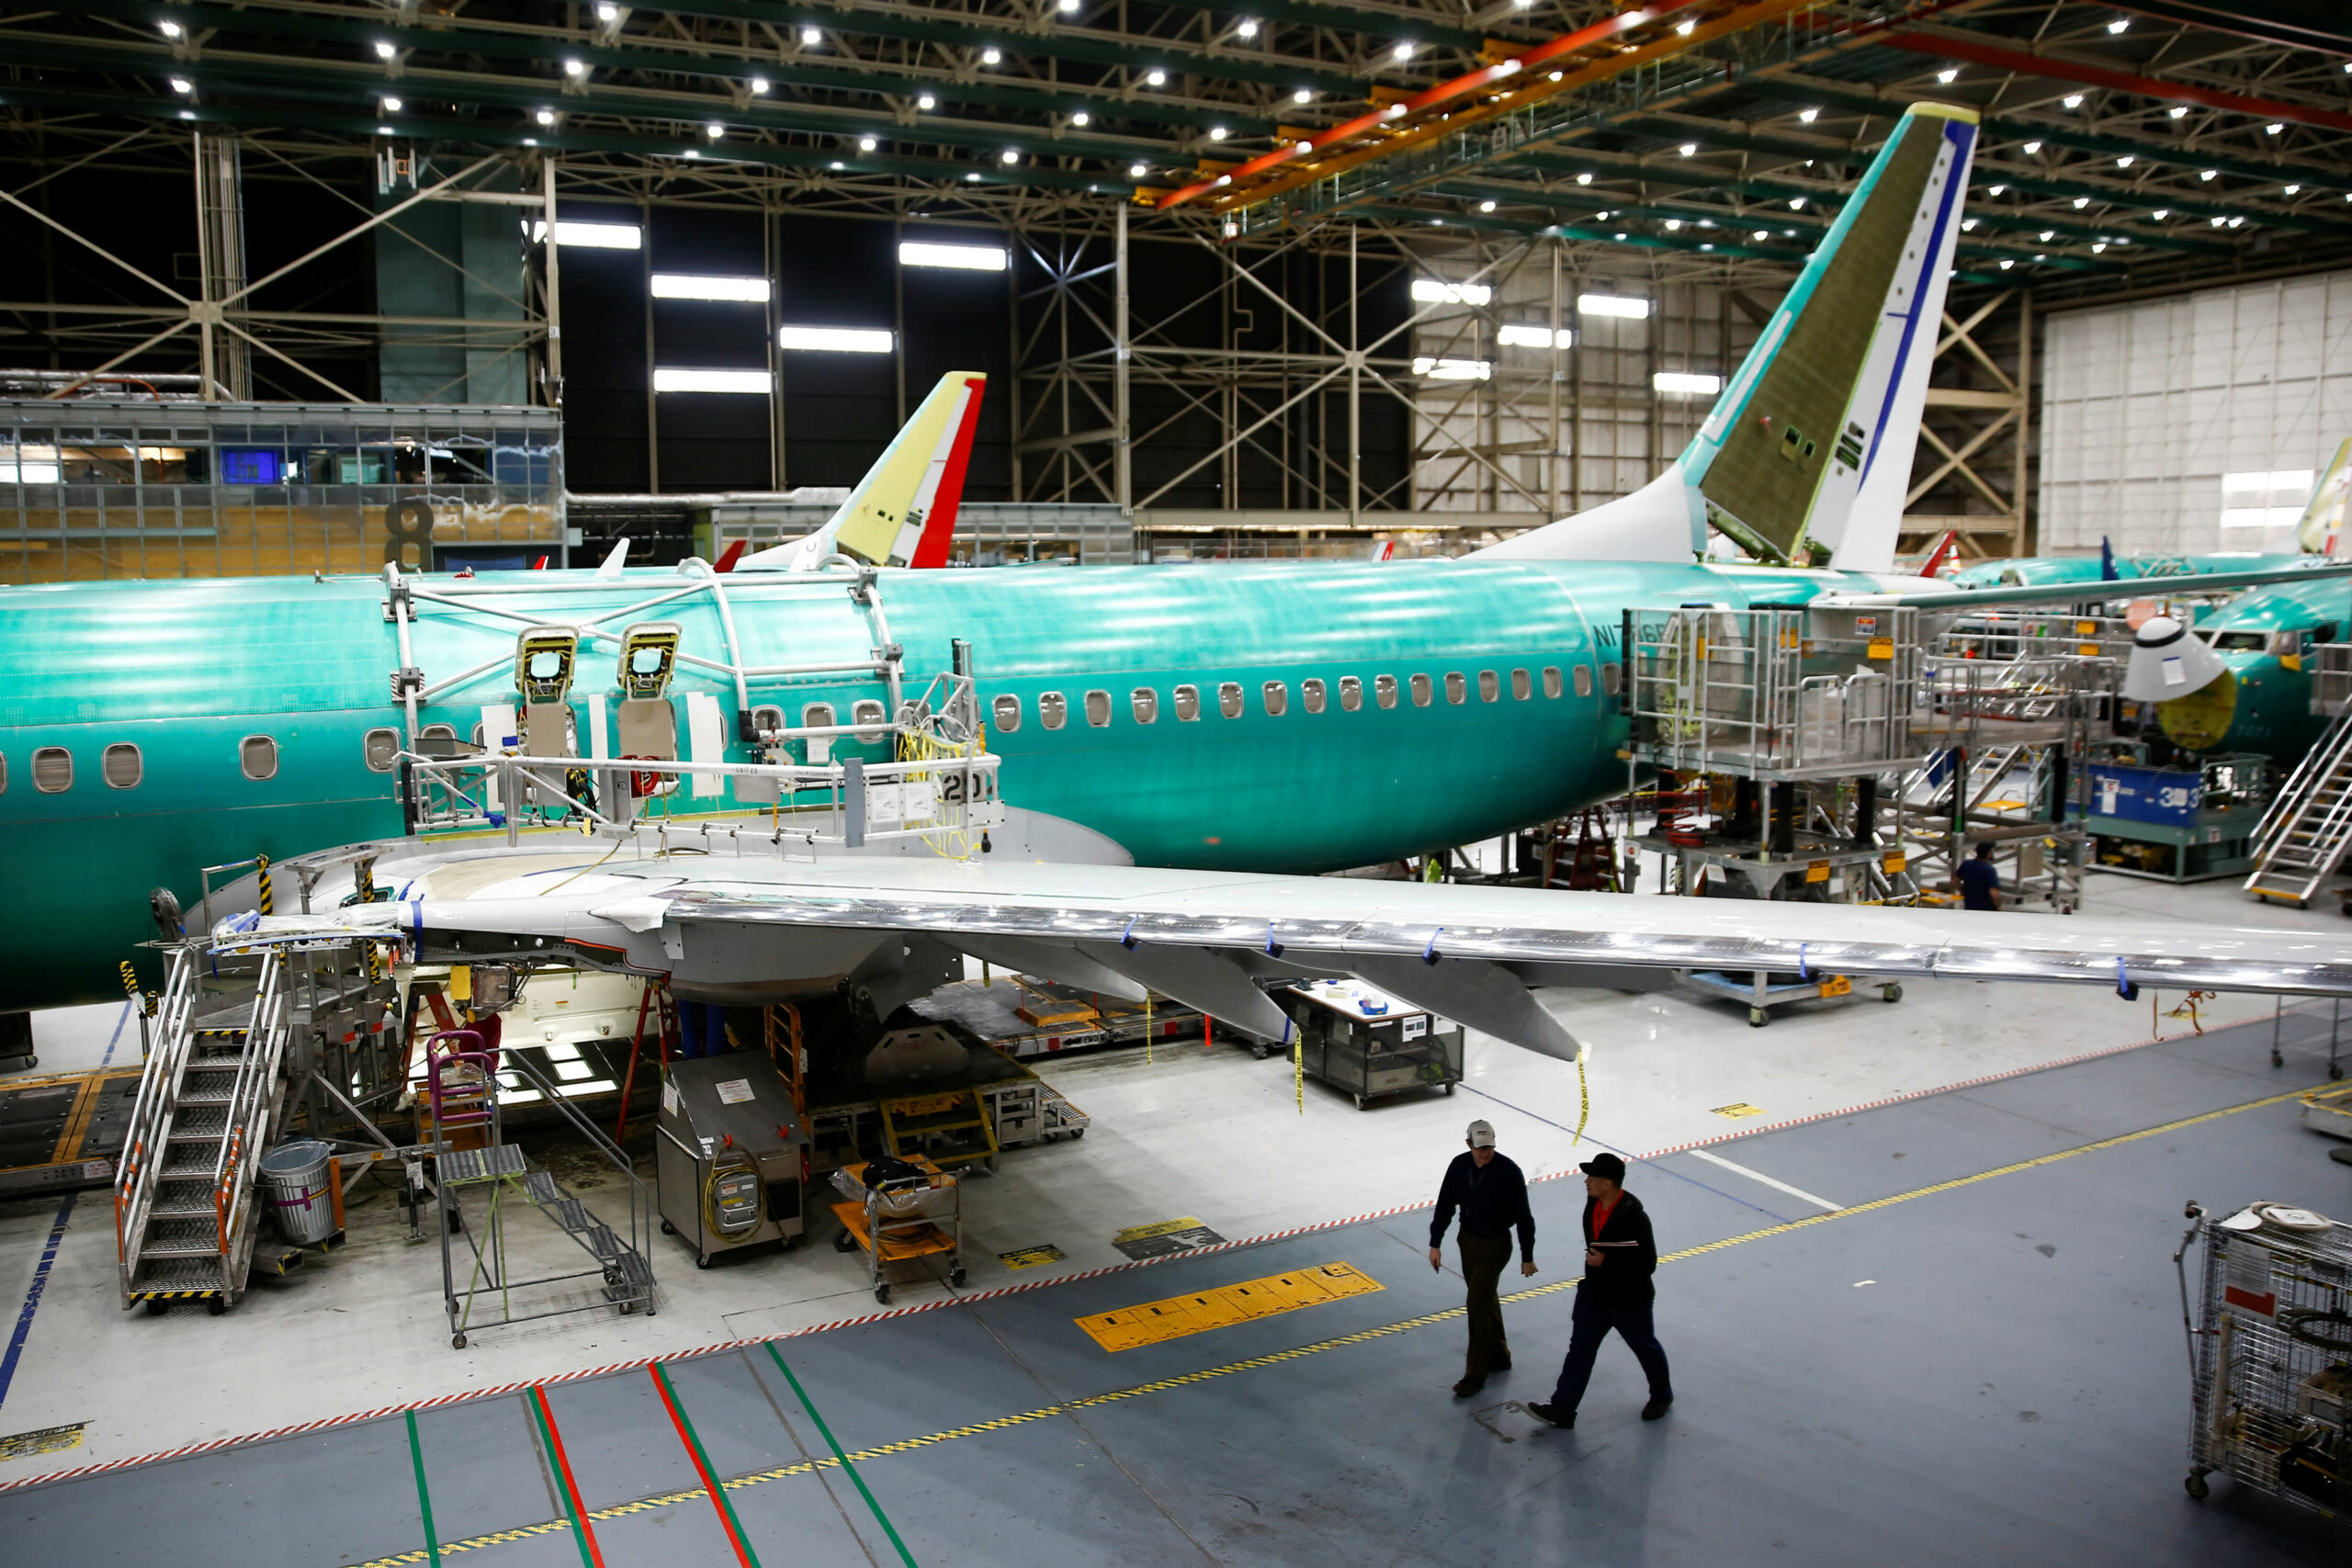 Boeing says demand for new airplanes will swell in next two decades